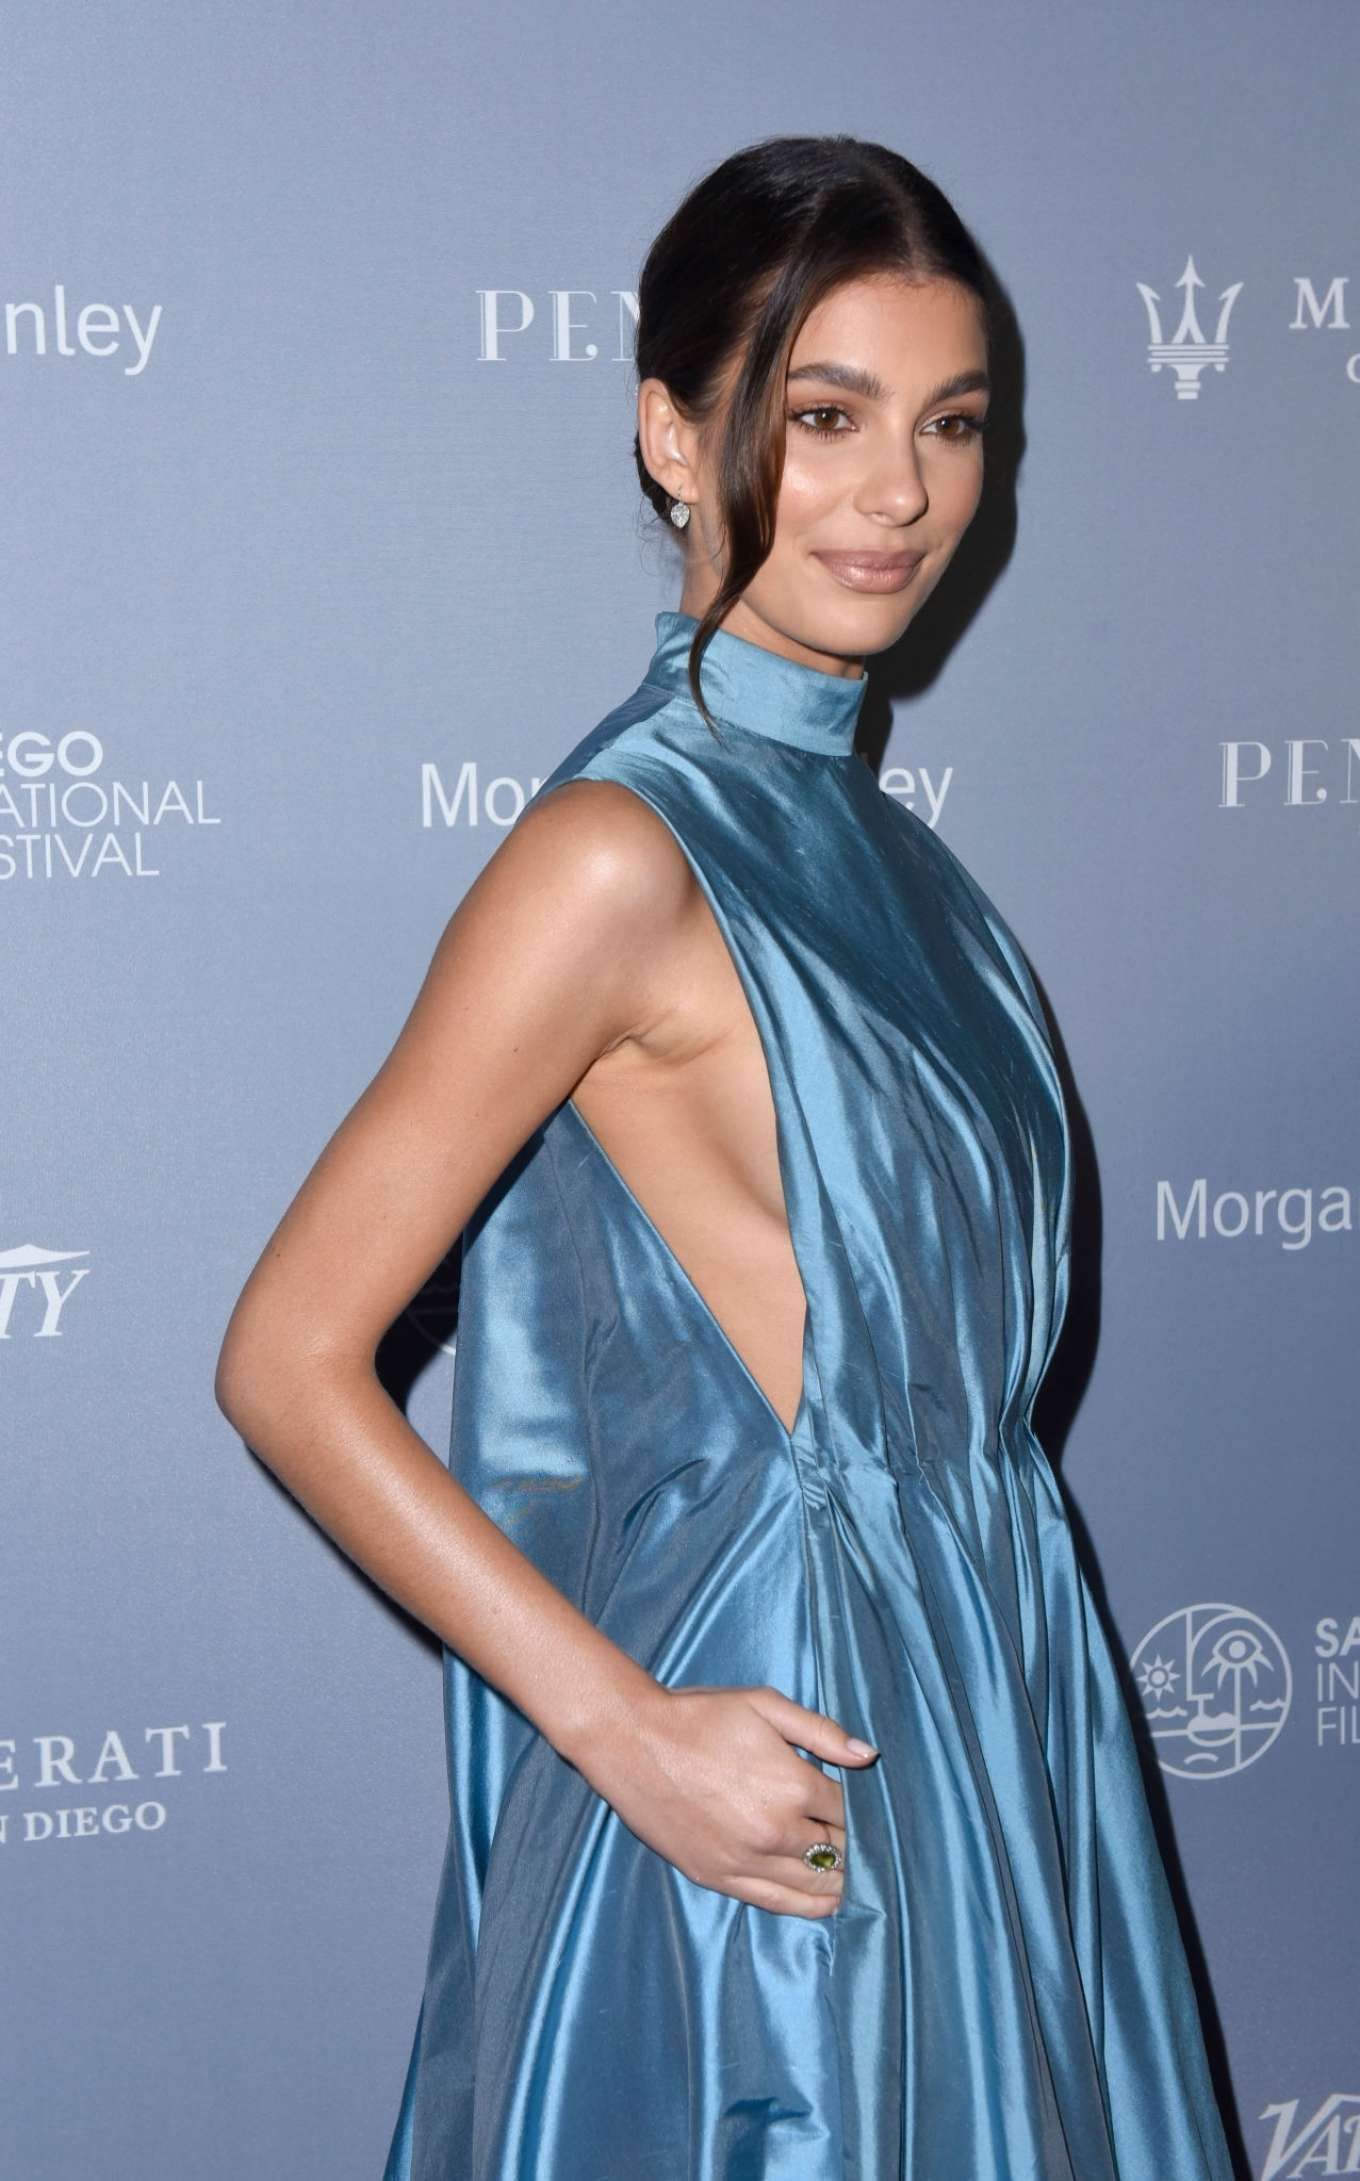 Camila Morrone - 2019 San Diego International Film Festival in San Diego